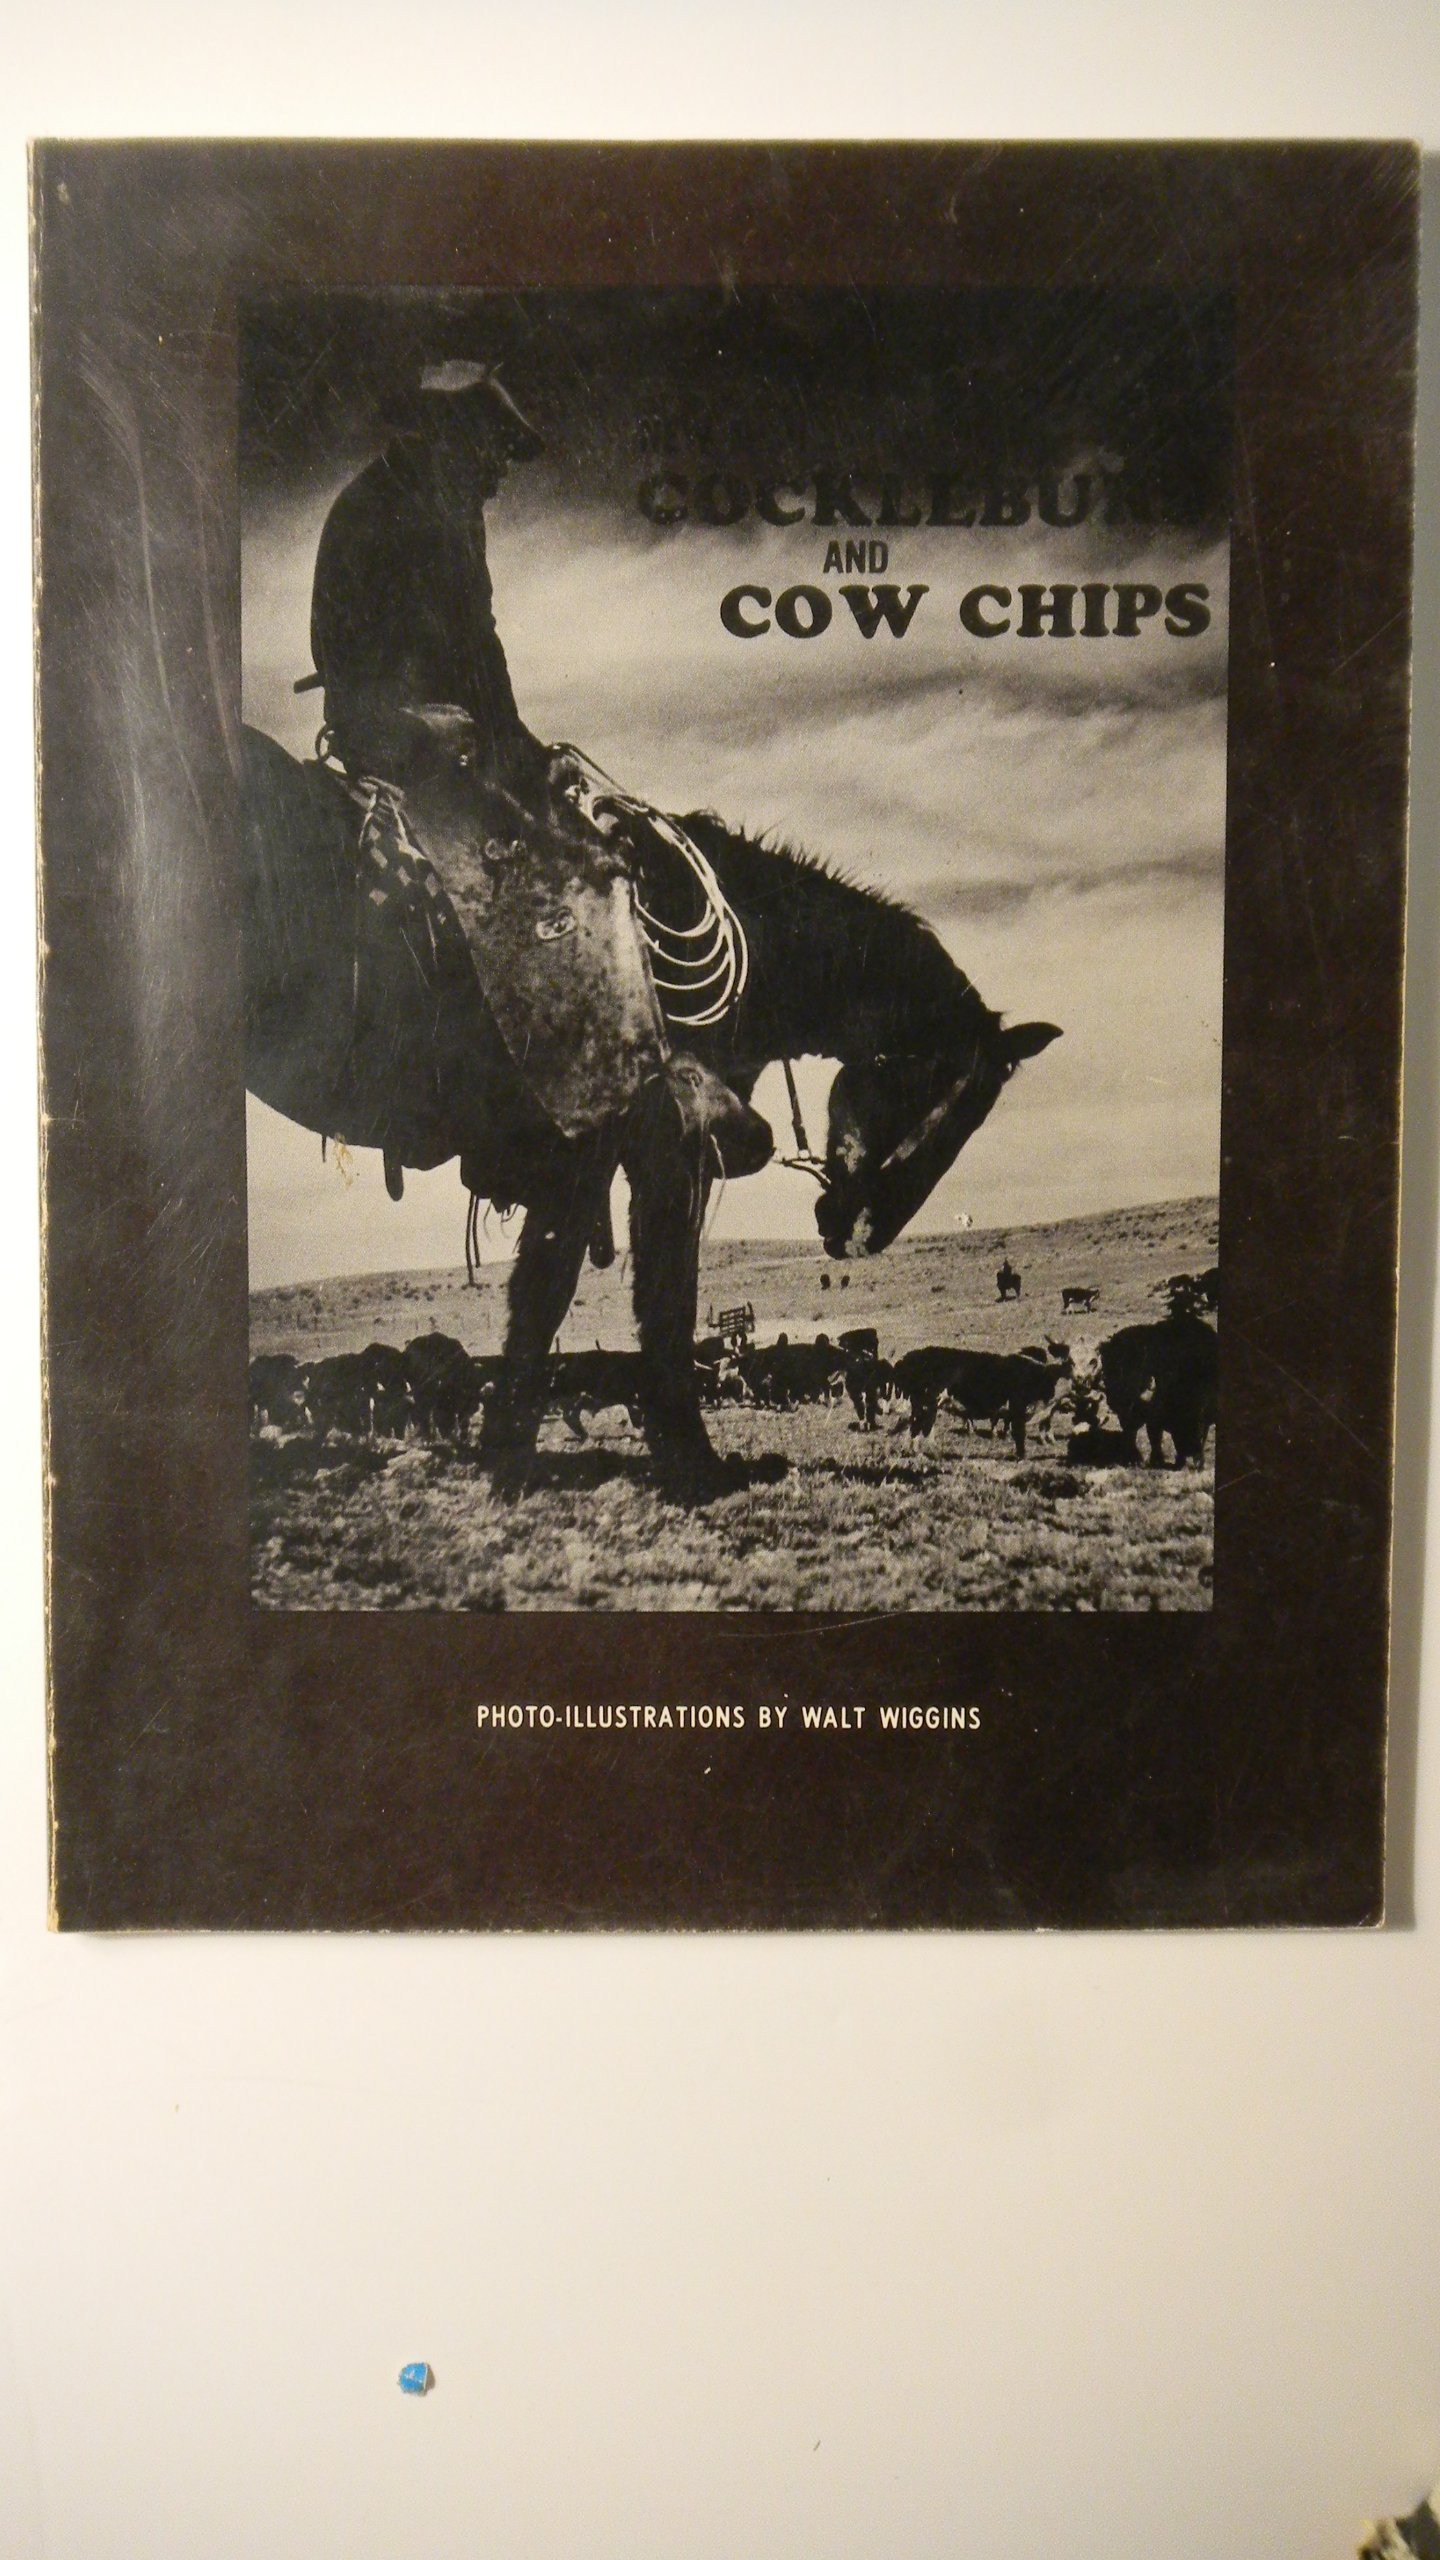 New Mexico cockleburs and cow chips: Walt Wiggins: Amazon